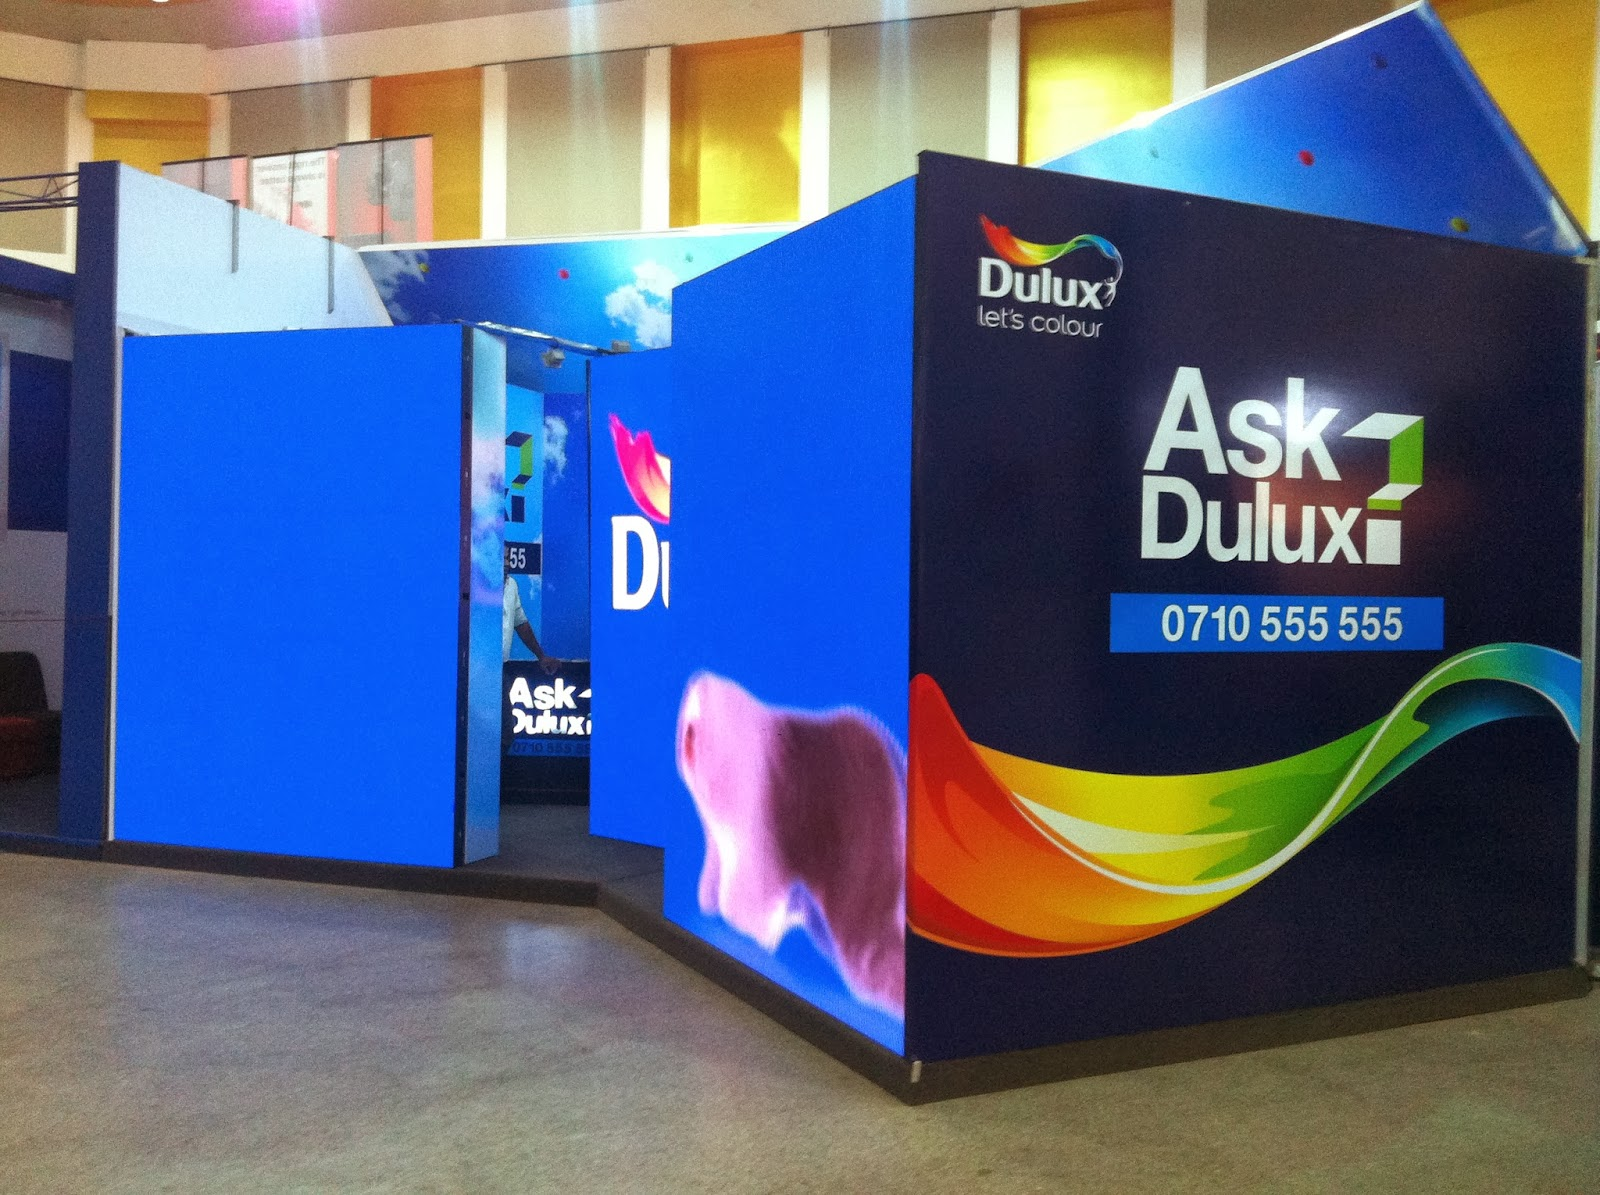 The Ask Dulux consultation lounge at The Architect 2014.